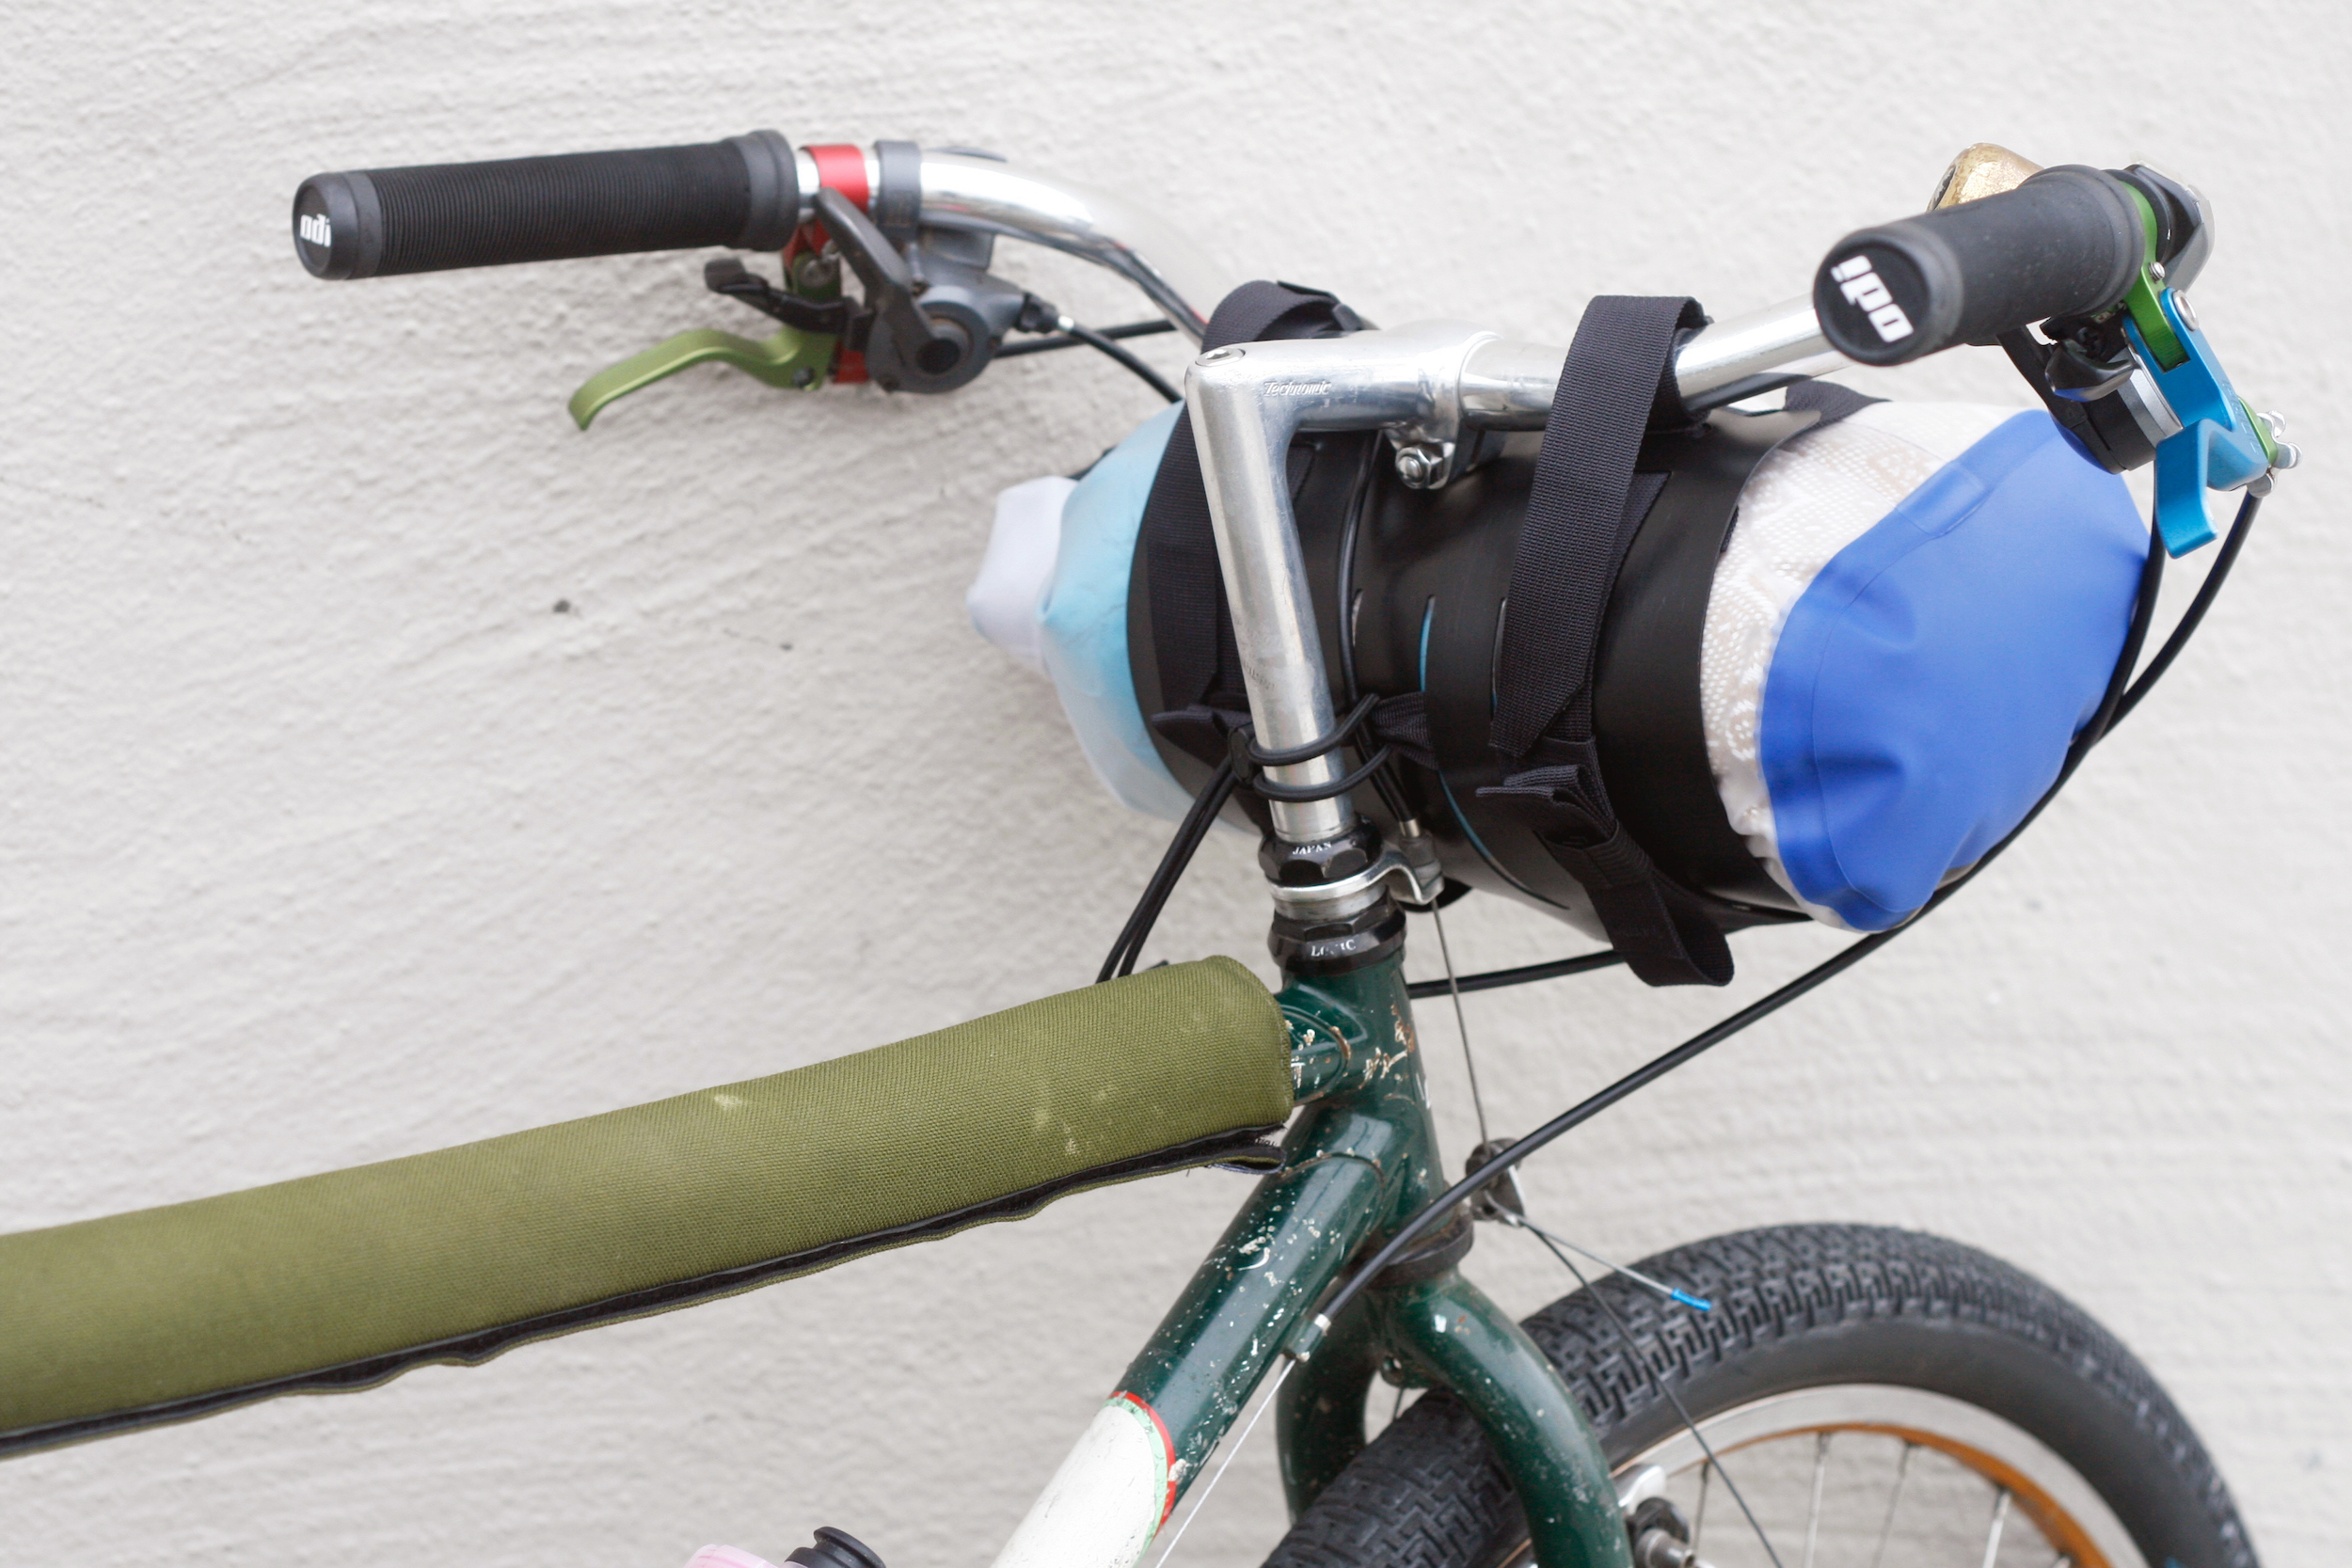 No spacers needed,5L dry bag shown, this bike doesn't fit a larger dry bag because it would run into the exposed brake cable and wouldn't fit behind the other cables